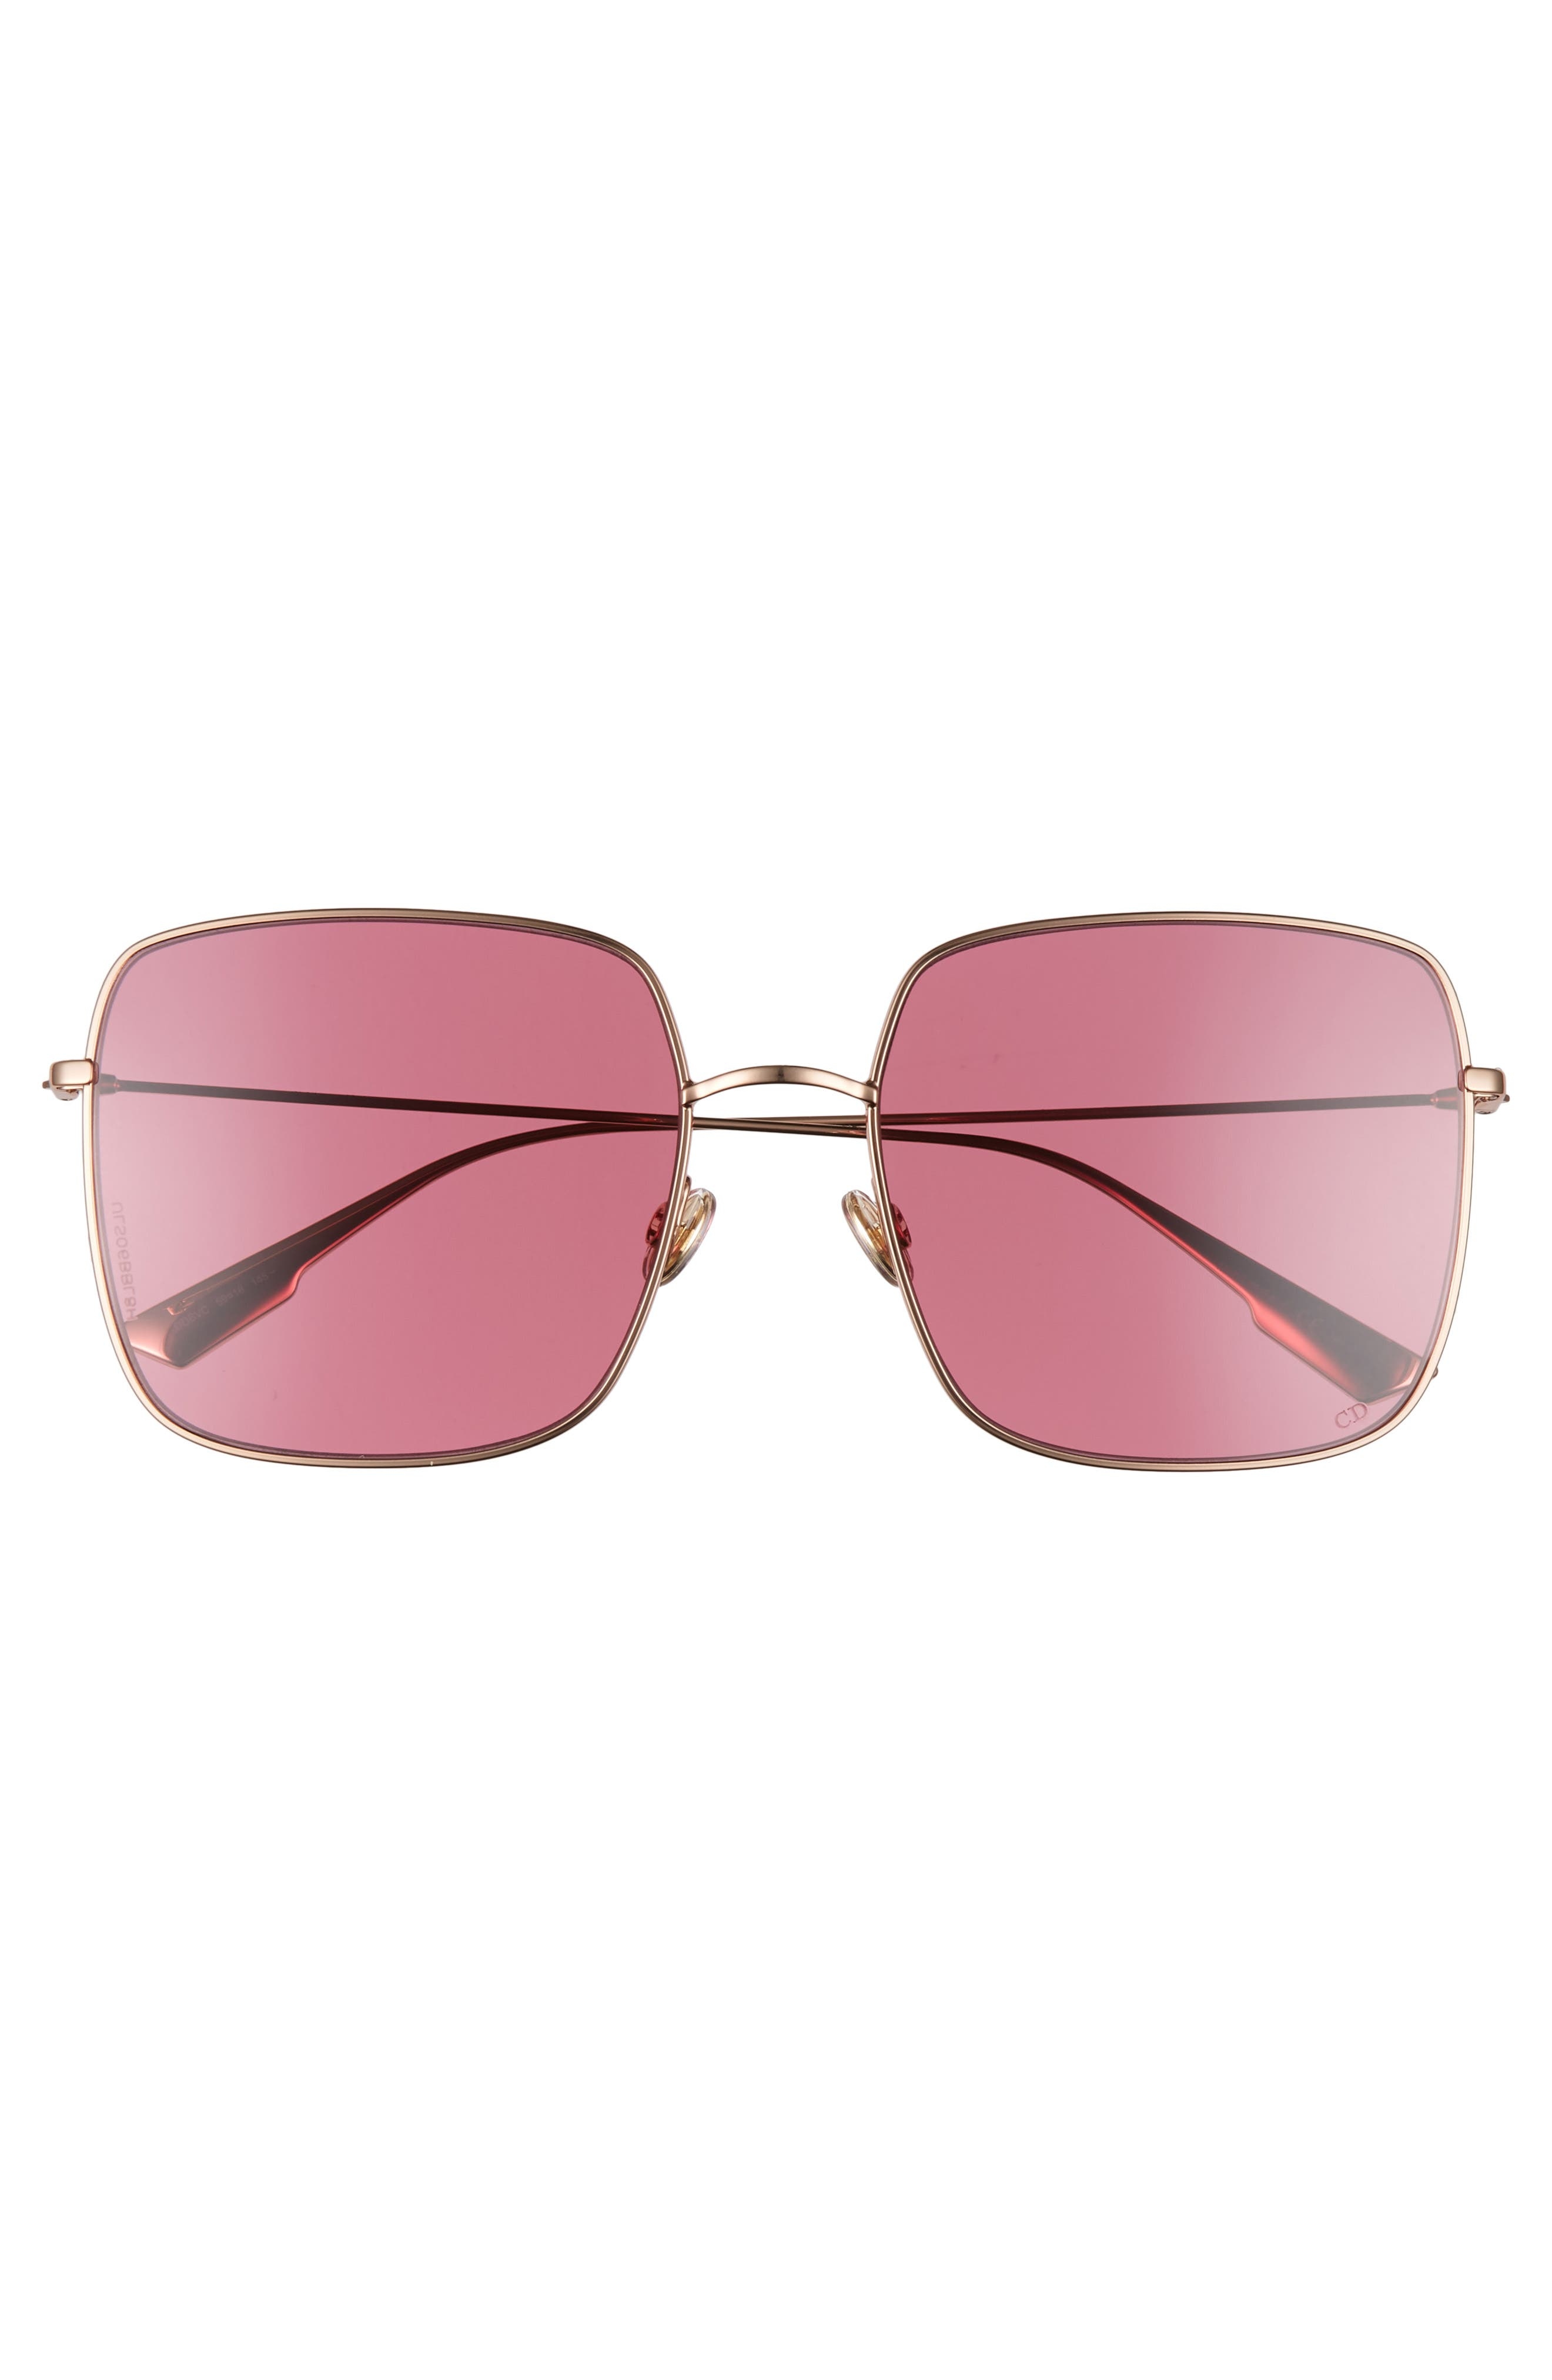 Stellaire 59mm Square Sunglasses,                             Alternate thumbnail 3, color,                             GOLD/ WINE